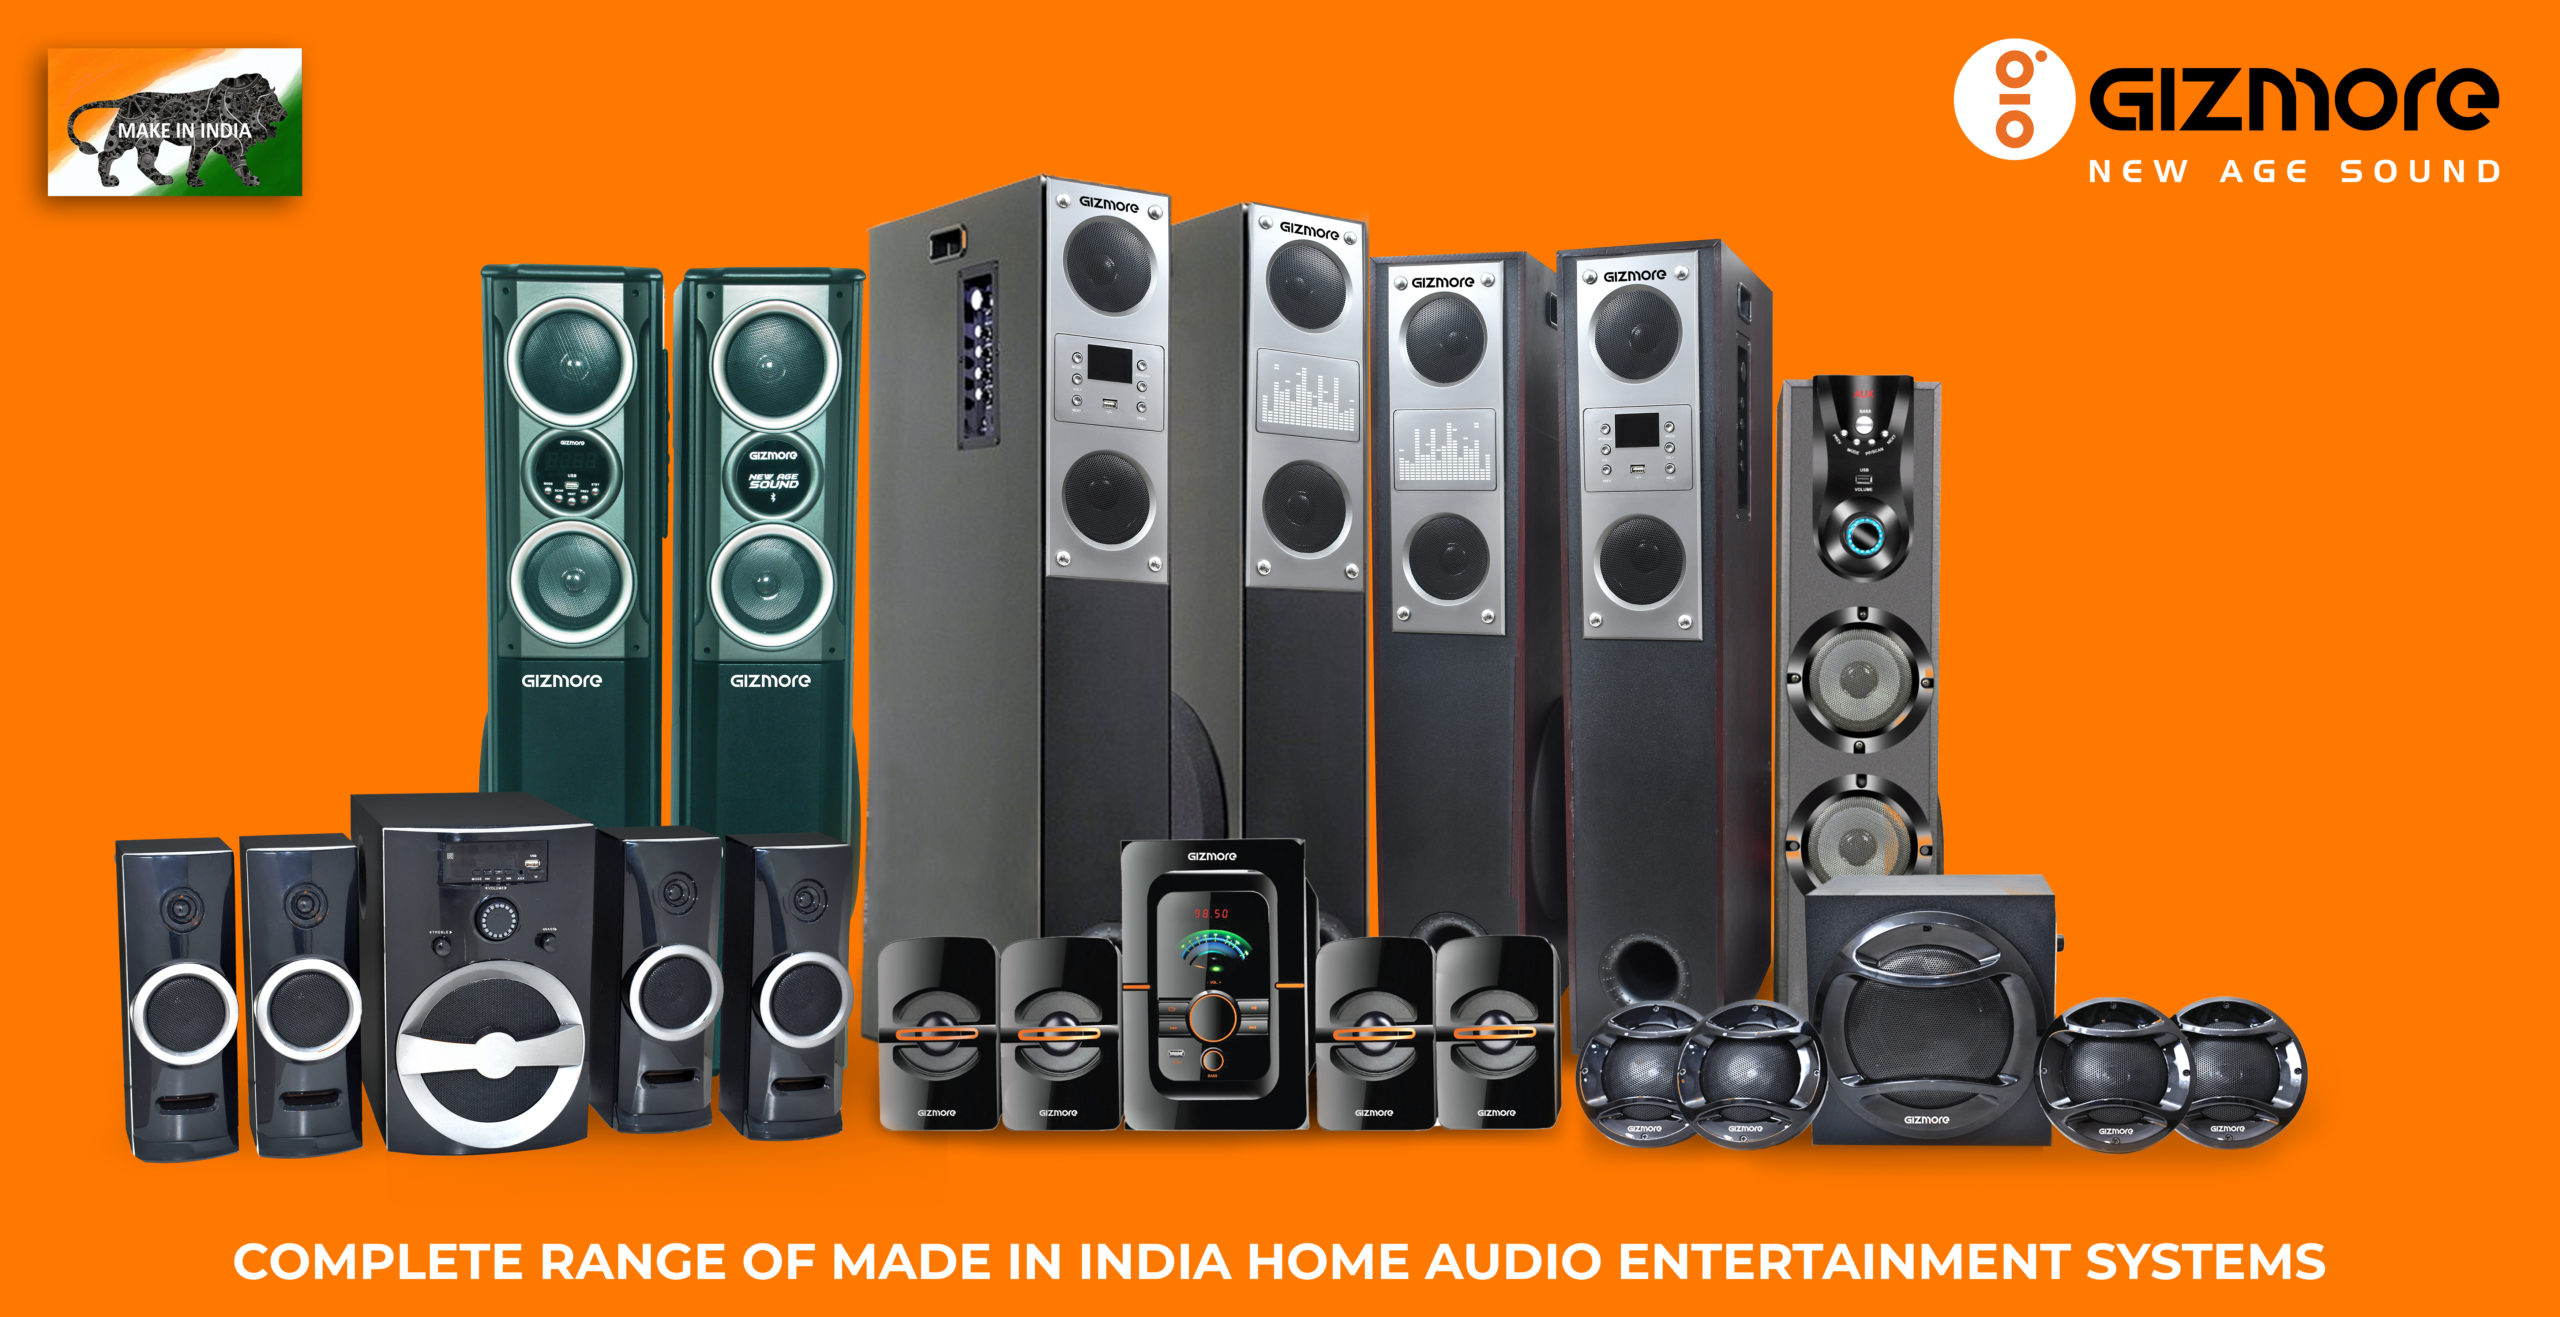 Gizmore introduces indigenous 'Made in India' home audio range